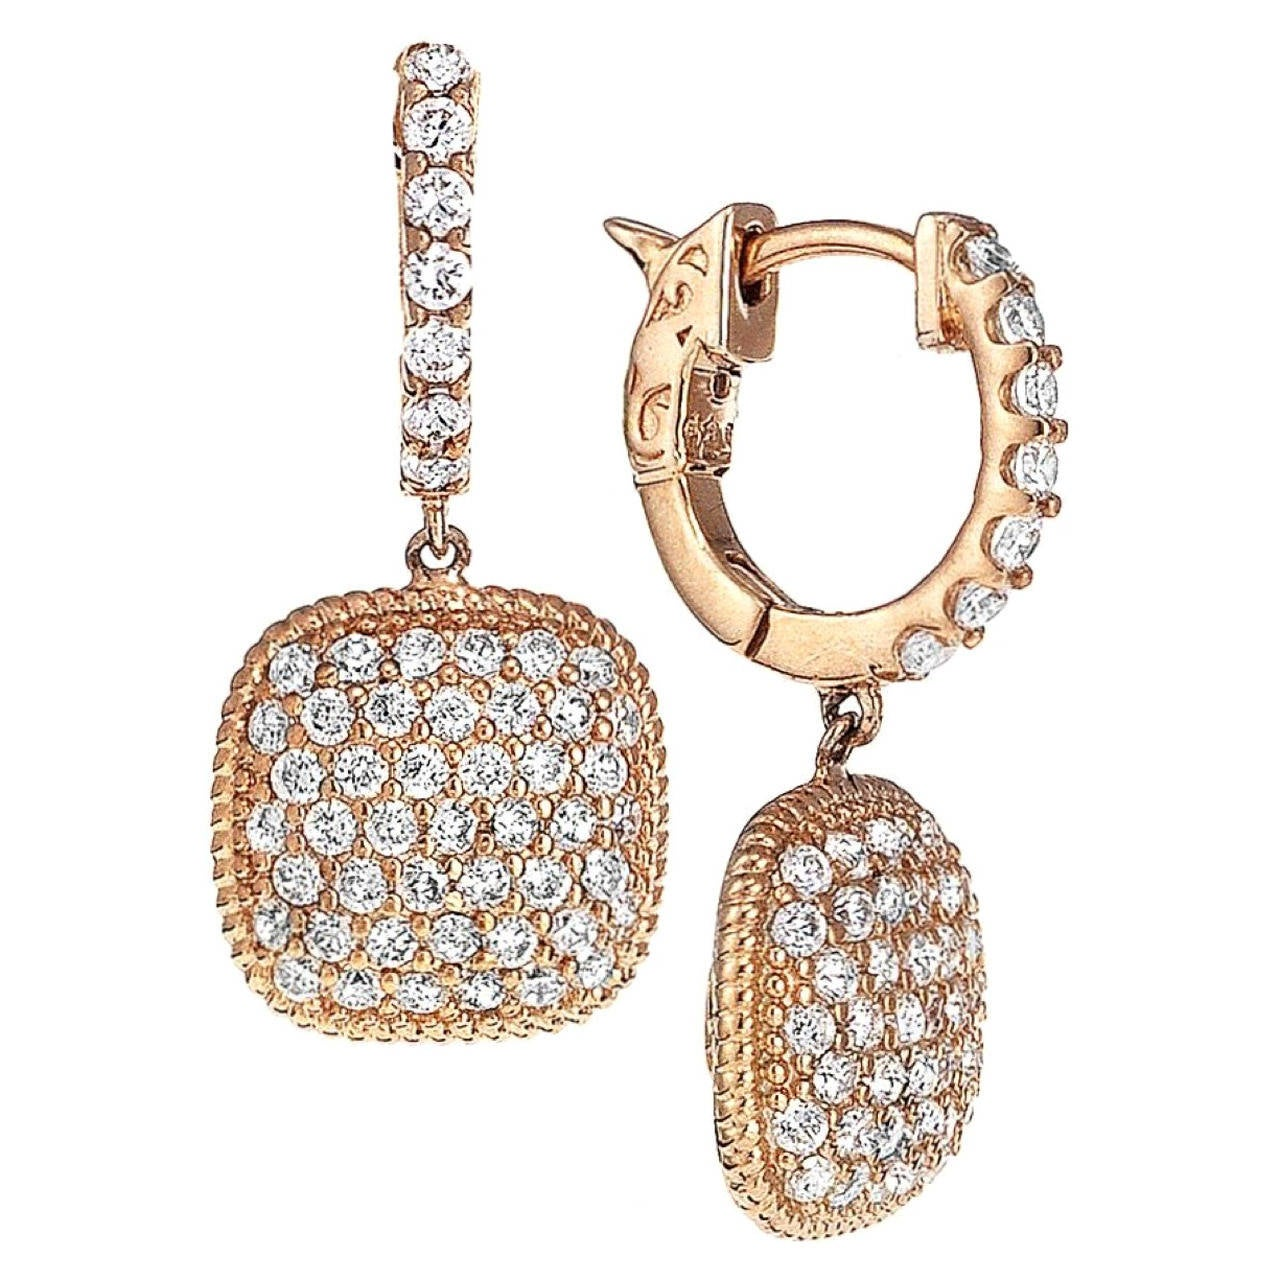 Cushion Shaped Micro Pave Diamond Earrings For Sale At 1stdibs